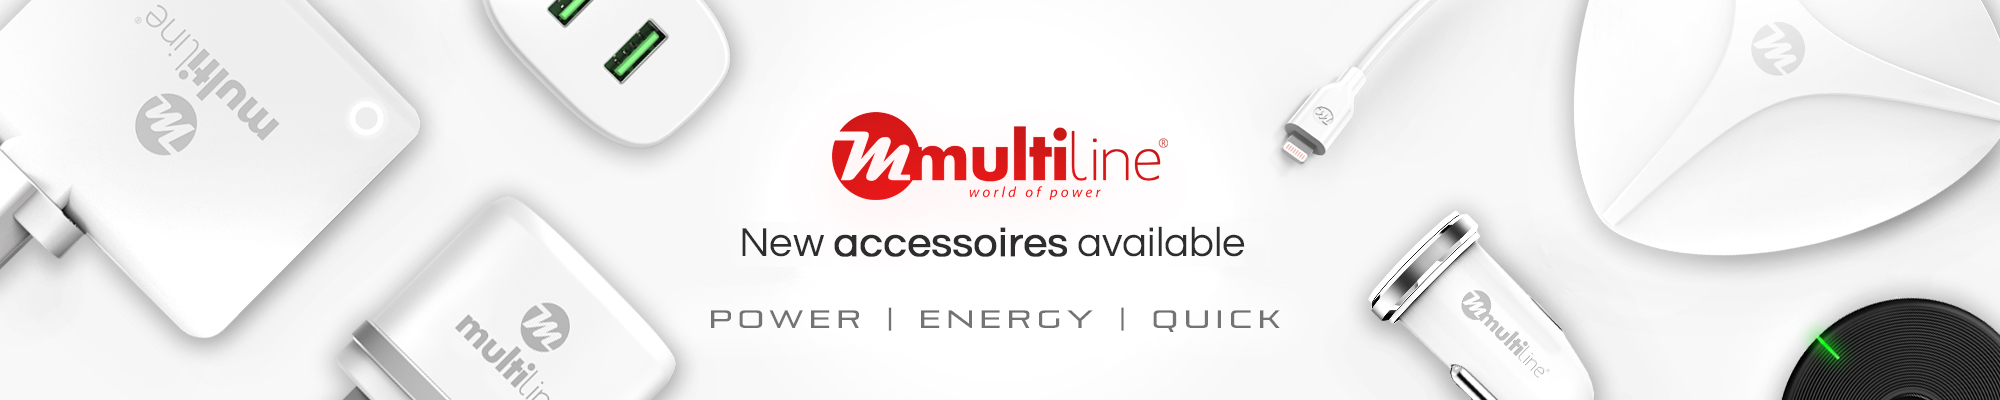 New accessoires for Multiline Chargers and Adapters available at GSM Parts Center